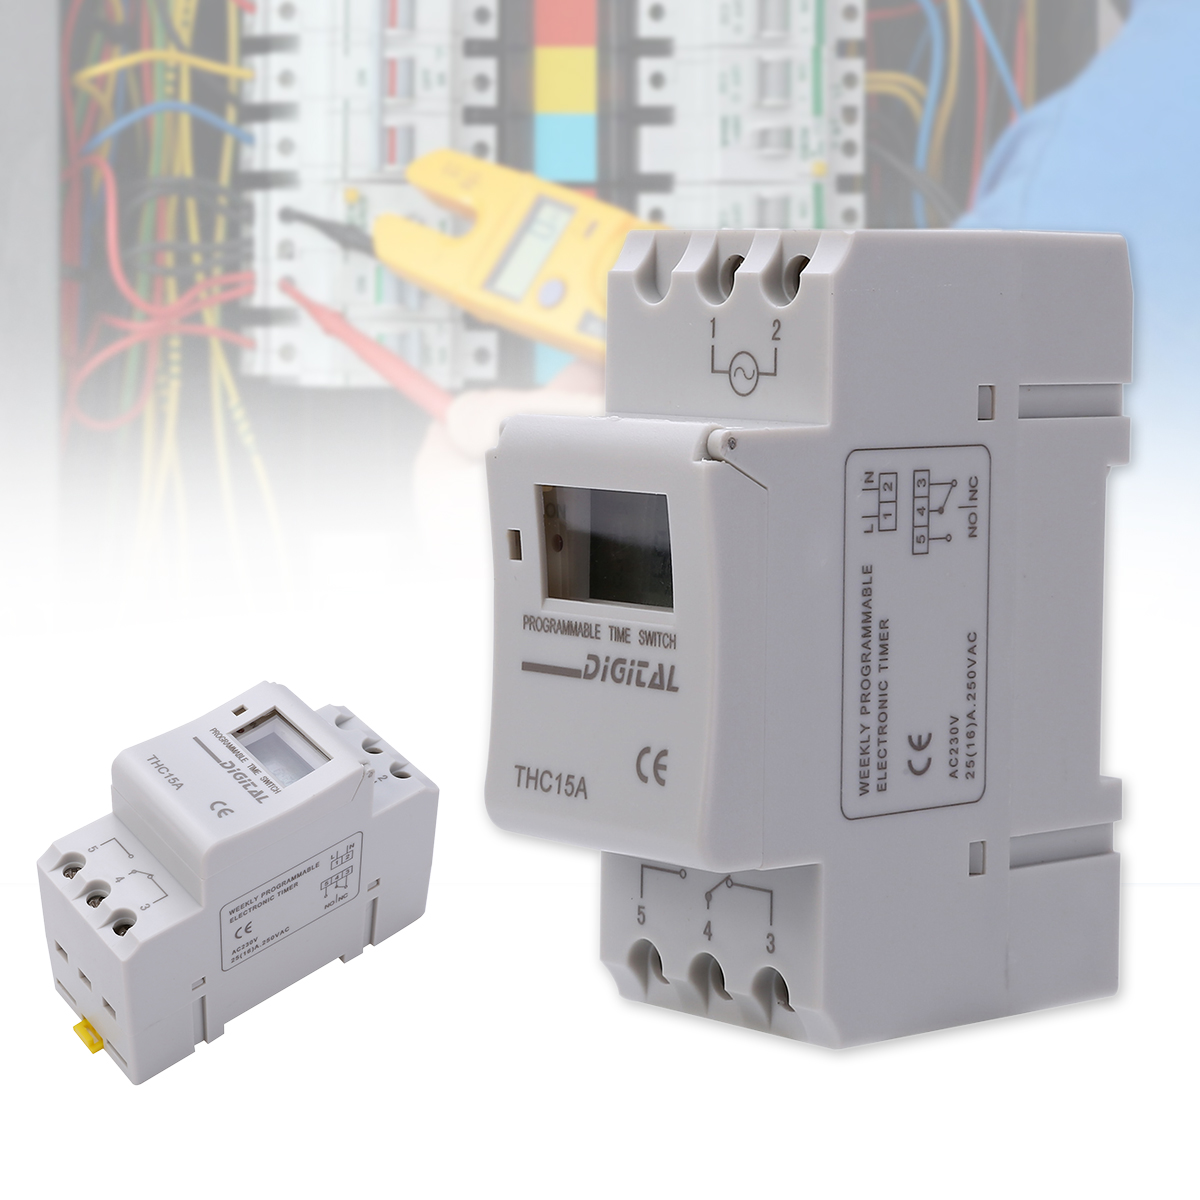 Aliexpress Popular Circuit Timer Switch In Electrical Equipment